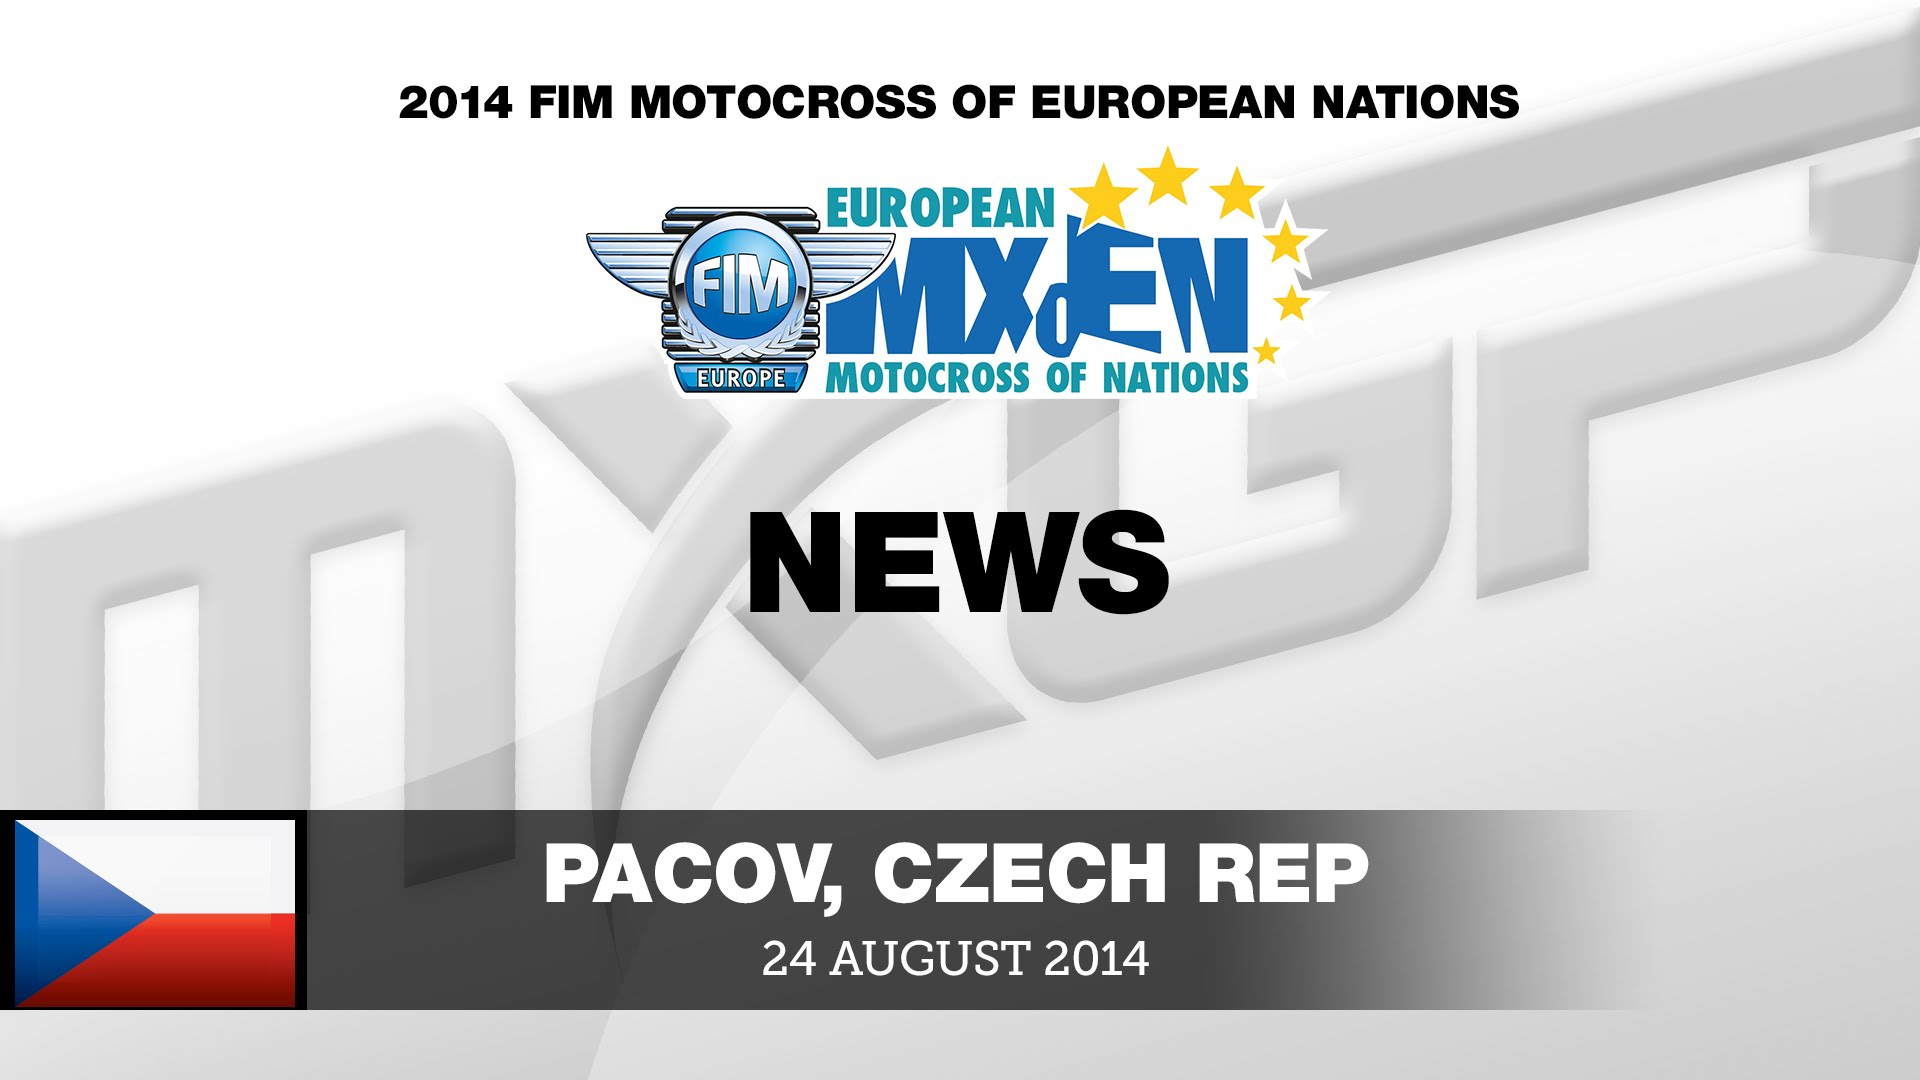 MXoEN 2014 Highlights - FIM Motocross of European Nations